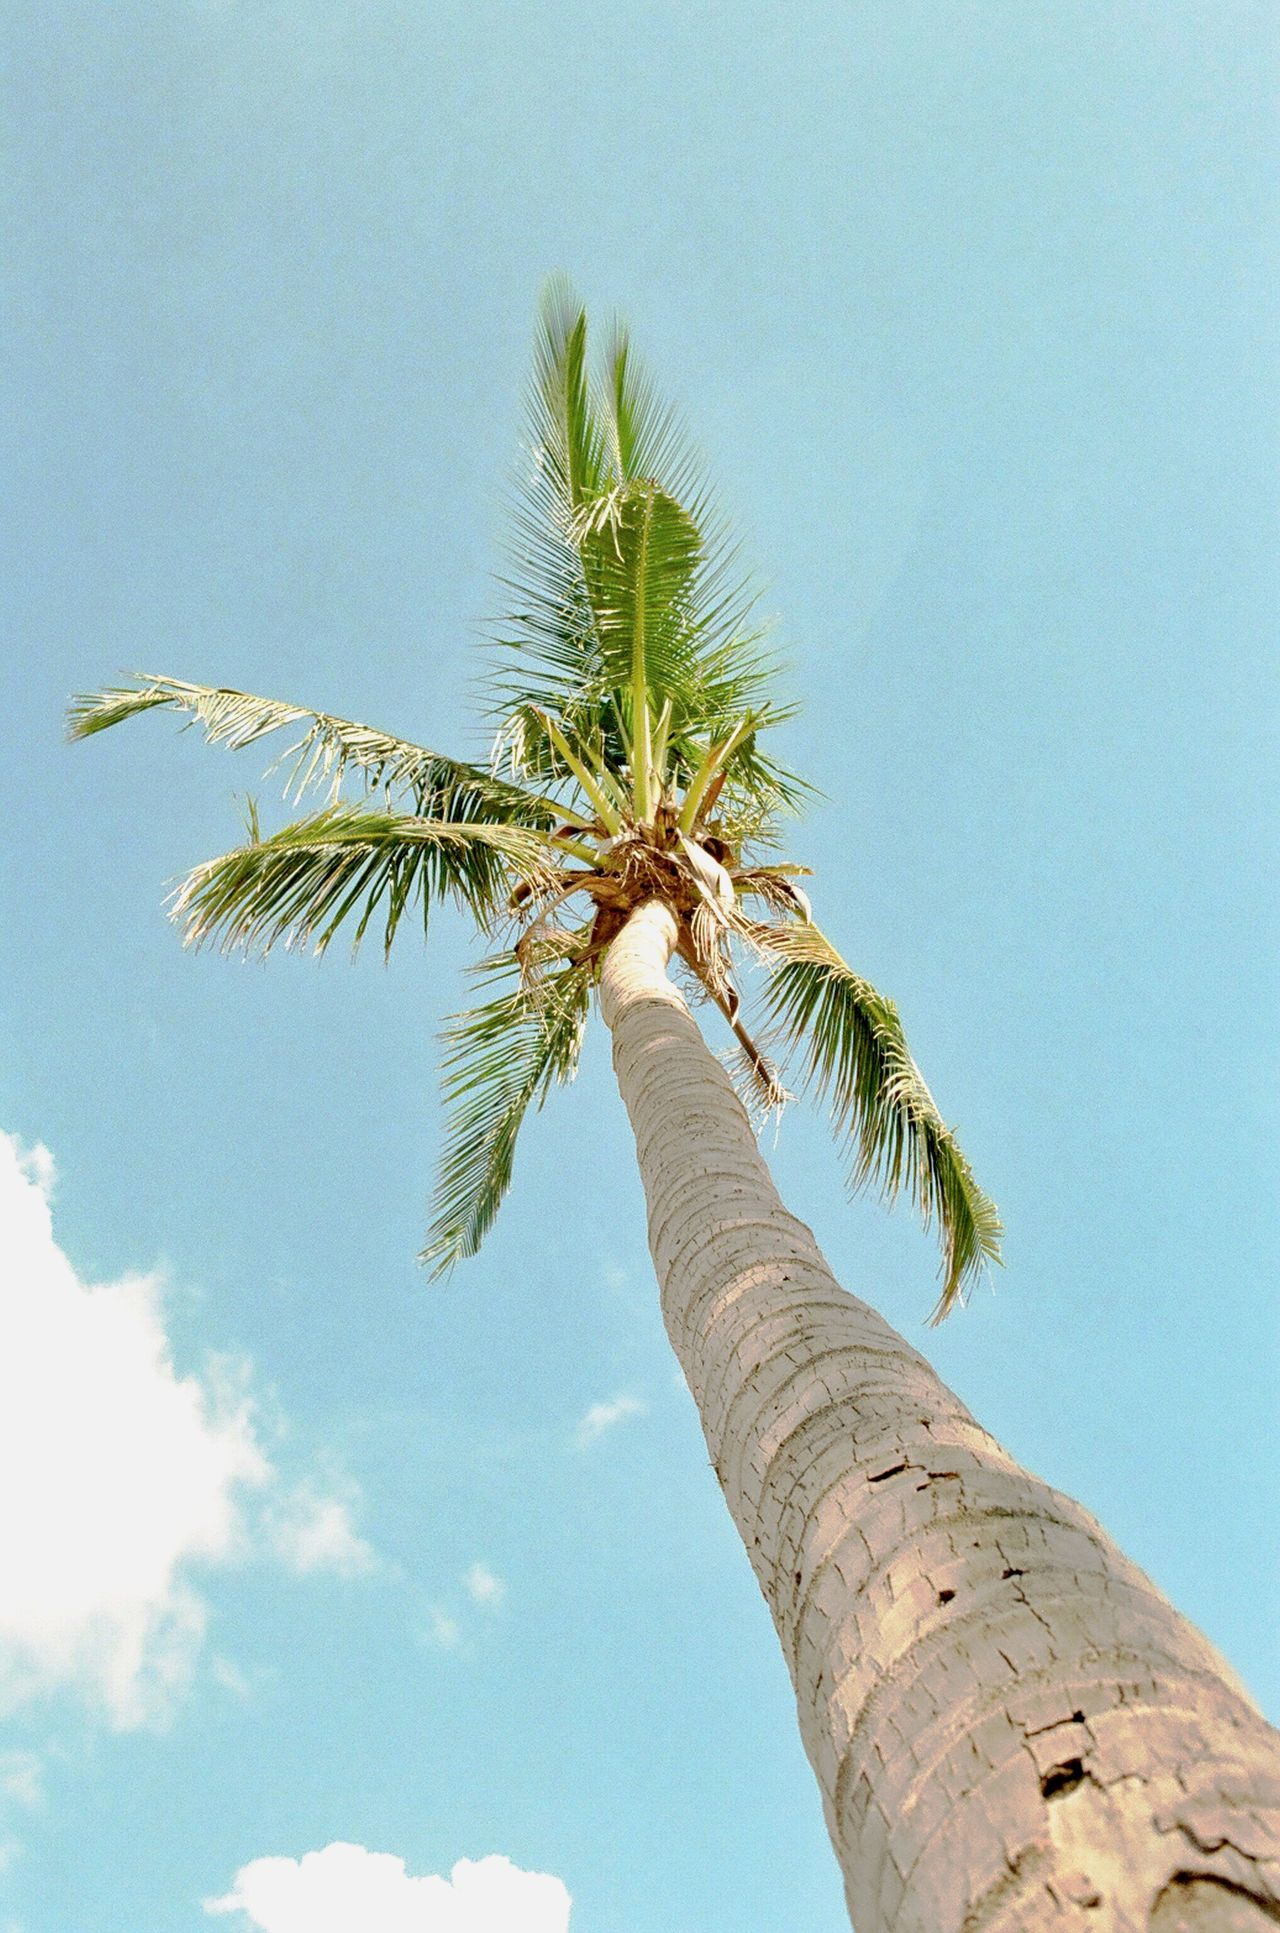 Film Photography Analogue Photography Vietnam Danang Mykhebeach Palm Tree Low Angle View Tree Nature Growth Sky Green Color Day No People Outdoors Clear Sky Beauty In Nature Close-up